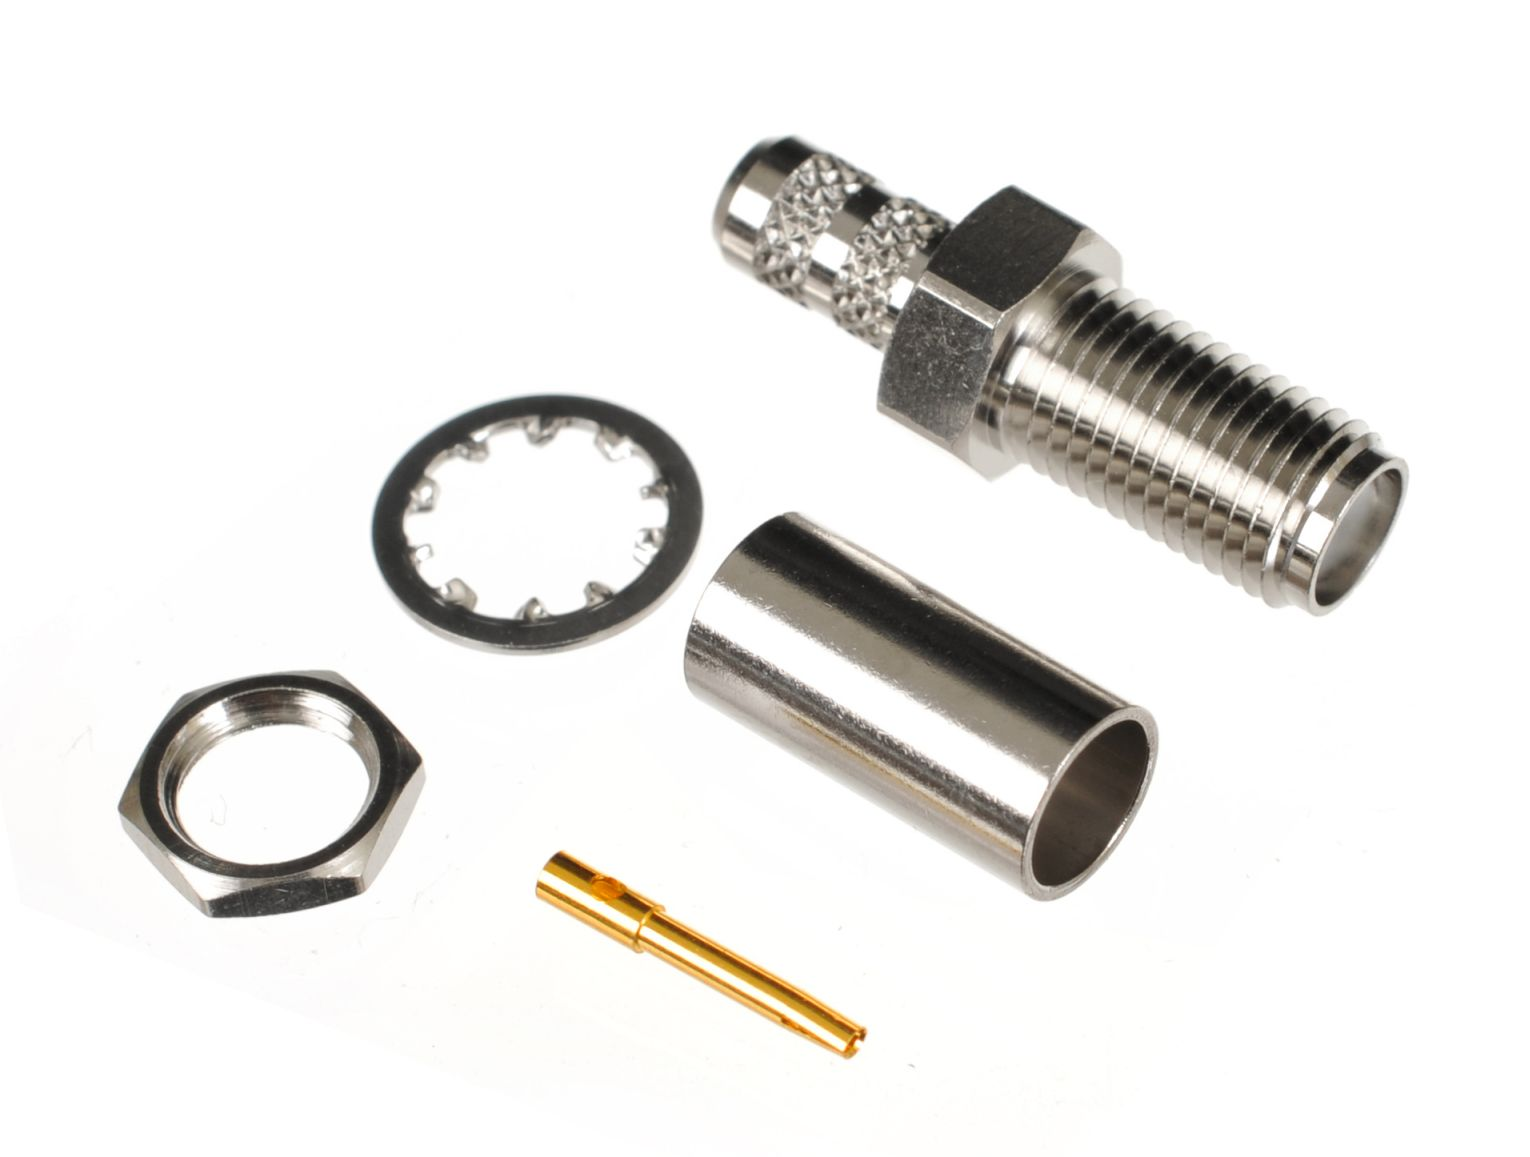 SMA jack or female bulkhead connector for CA195, LMR195 and RG58 coaxial cable sizes.